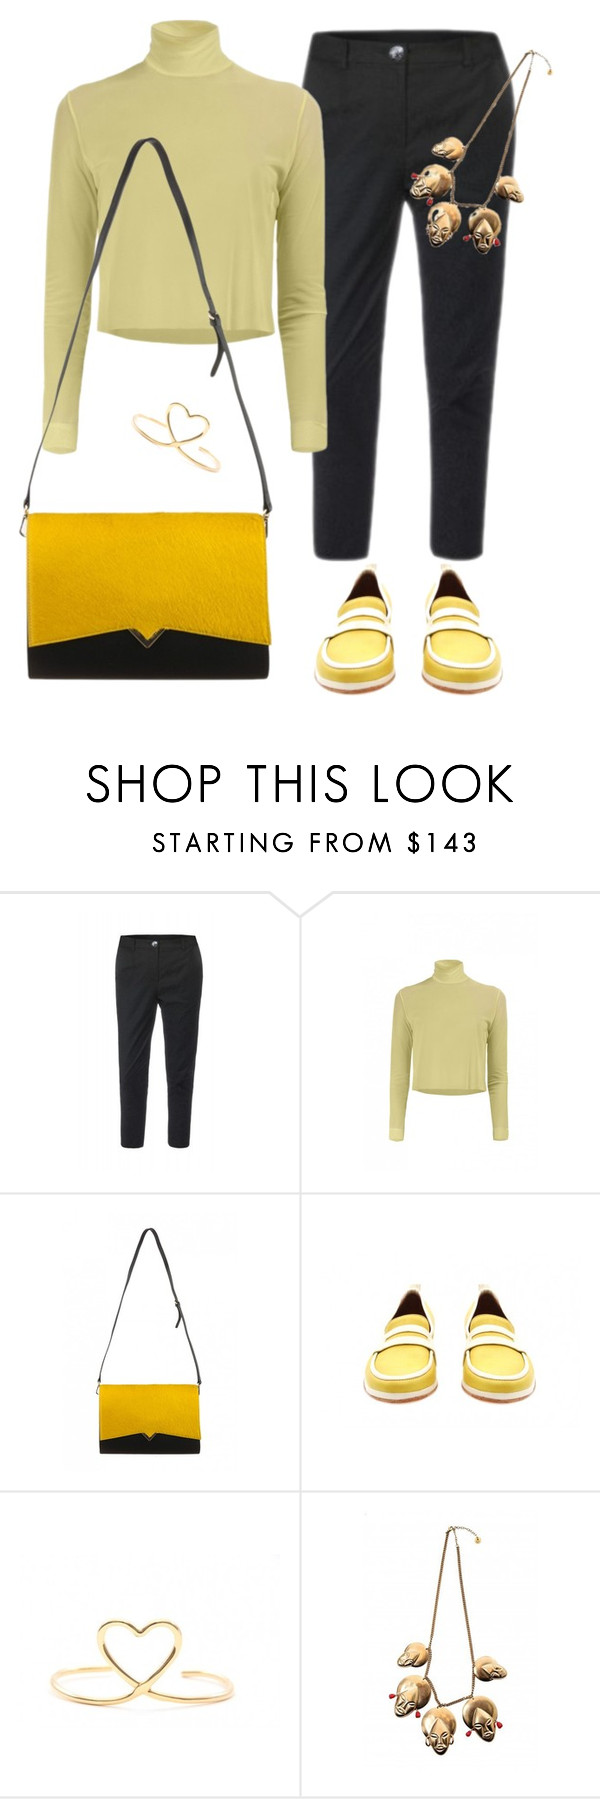 """""""Bring me sunshine!"""" by kreateurs ❤ liked on Polyvore featuring Devastee, women's clothing, women, female, woman, misses and juniors"""